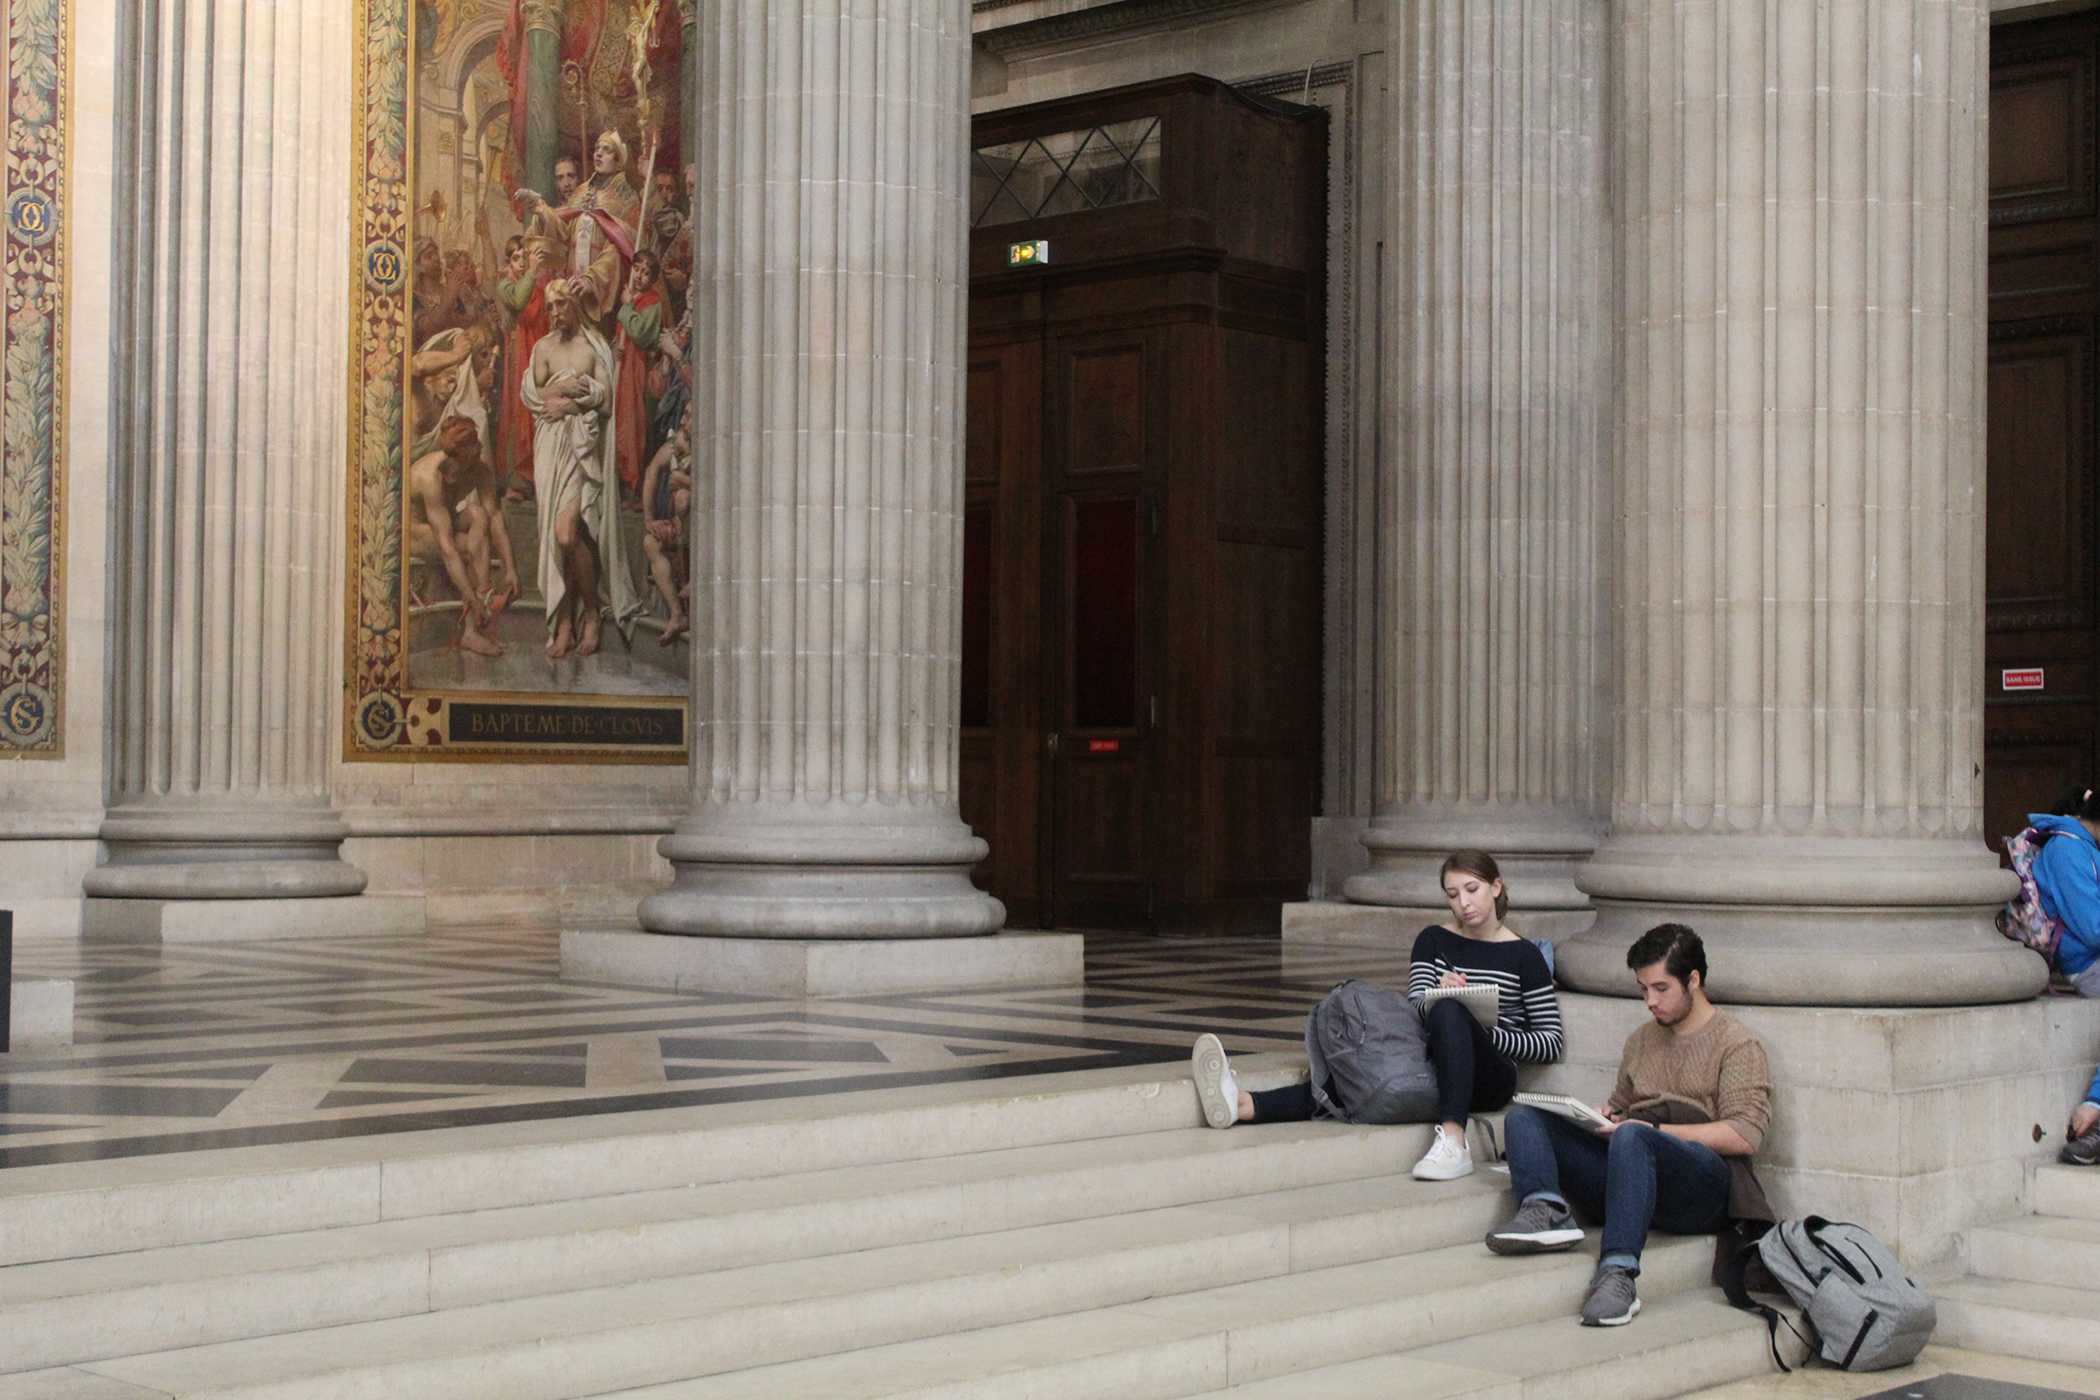 Two people sitting on the steps inside of the Panthéon looking into books they are holding.